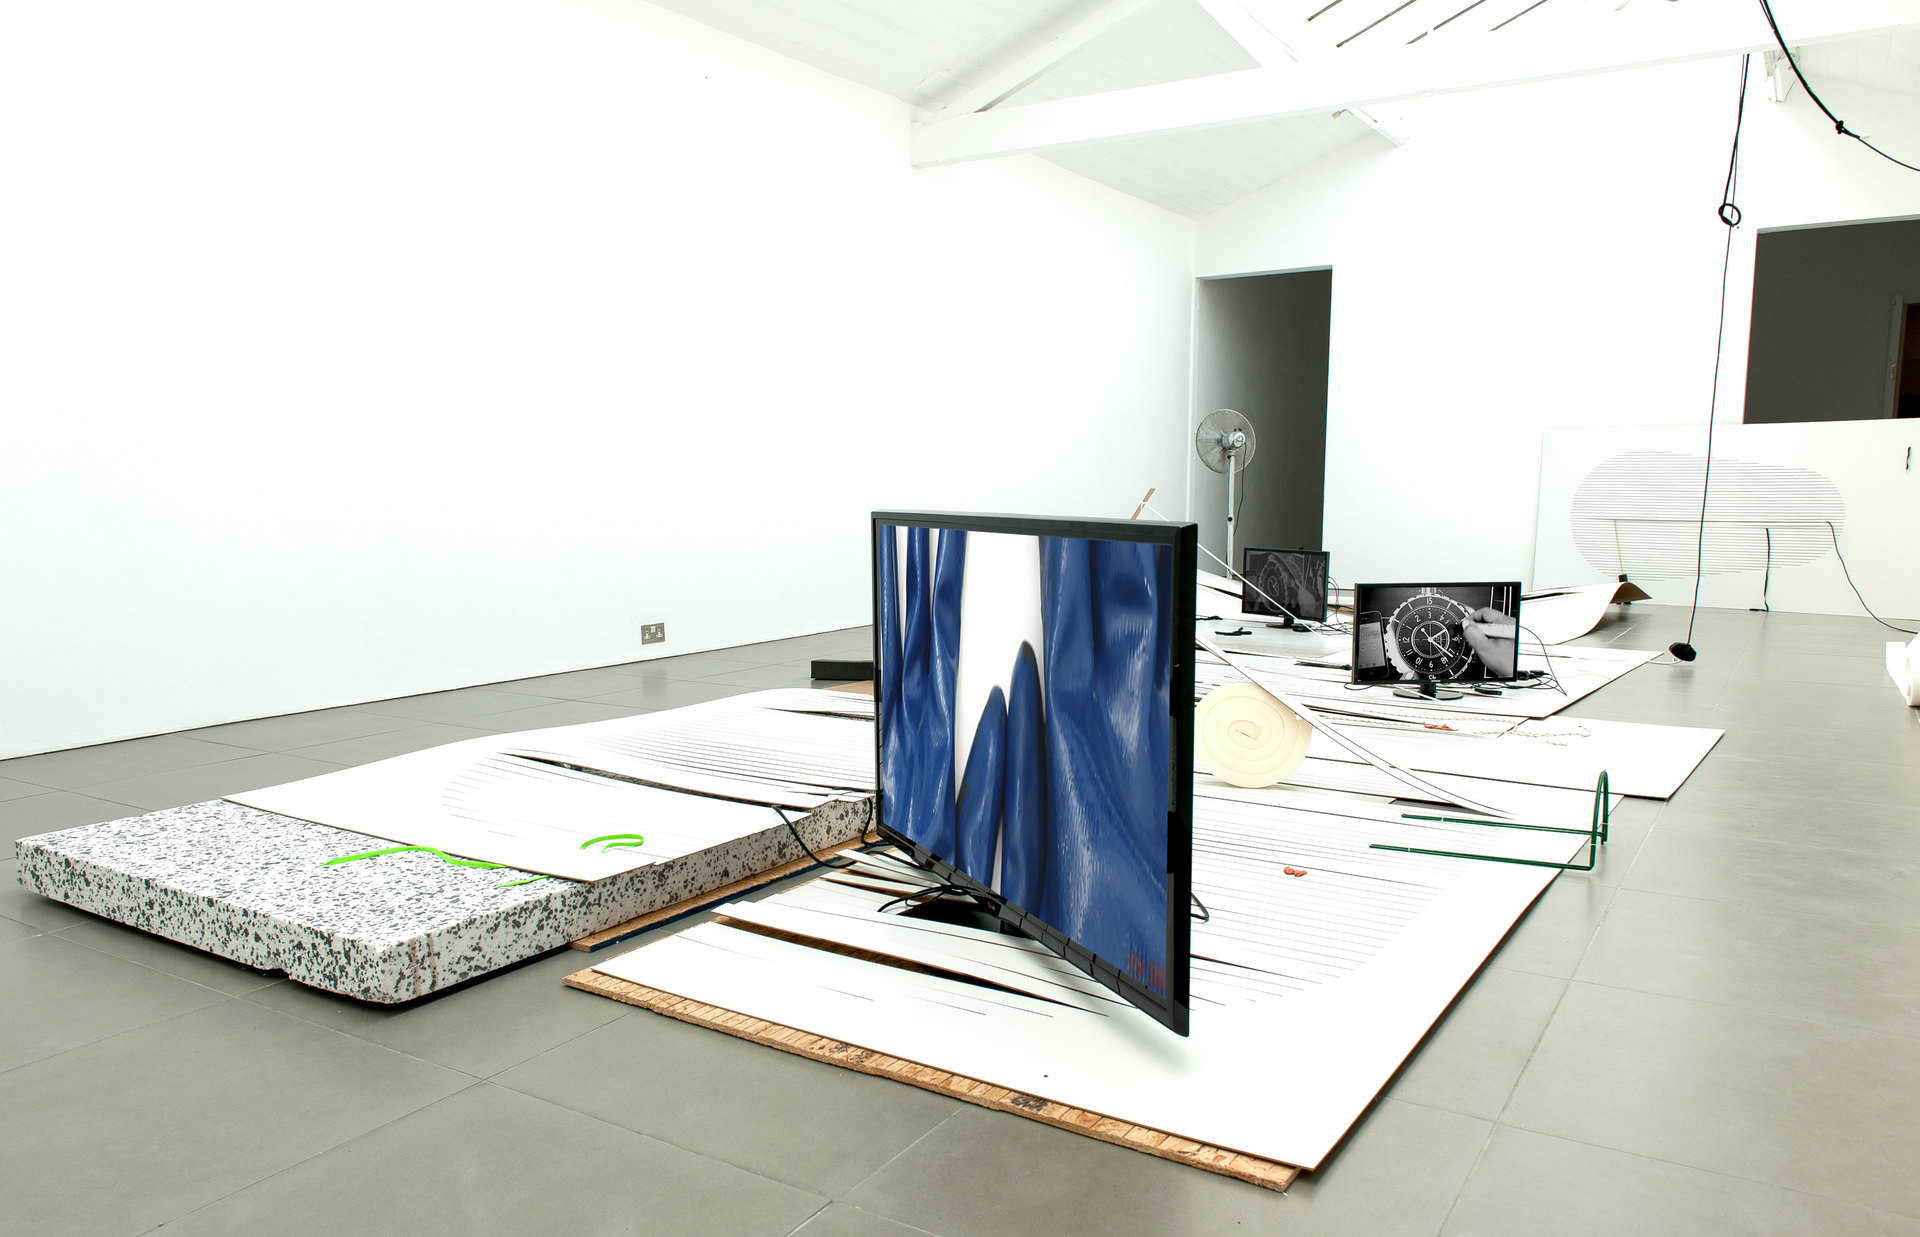 Beatriz Olabieretta, Shift Show, Cell Project space